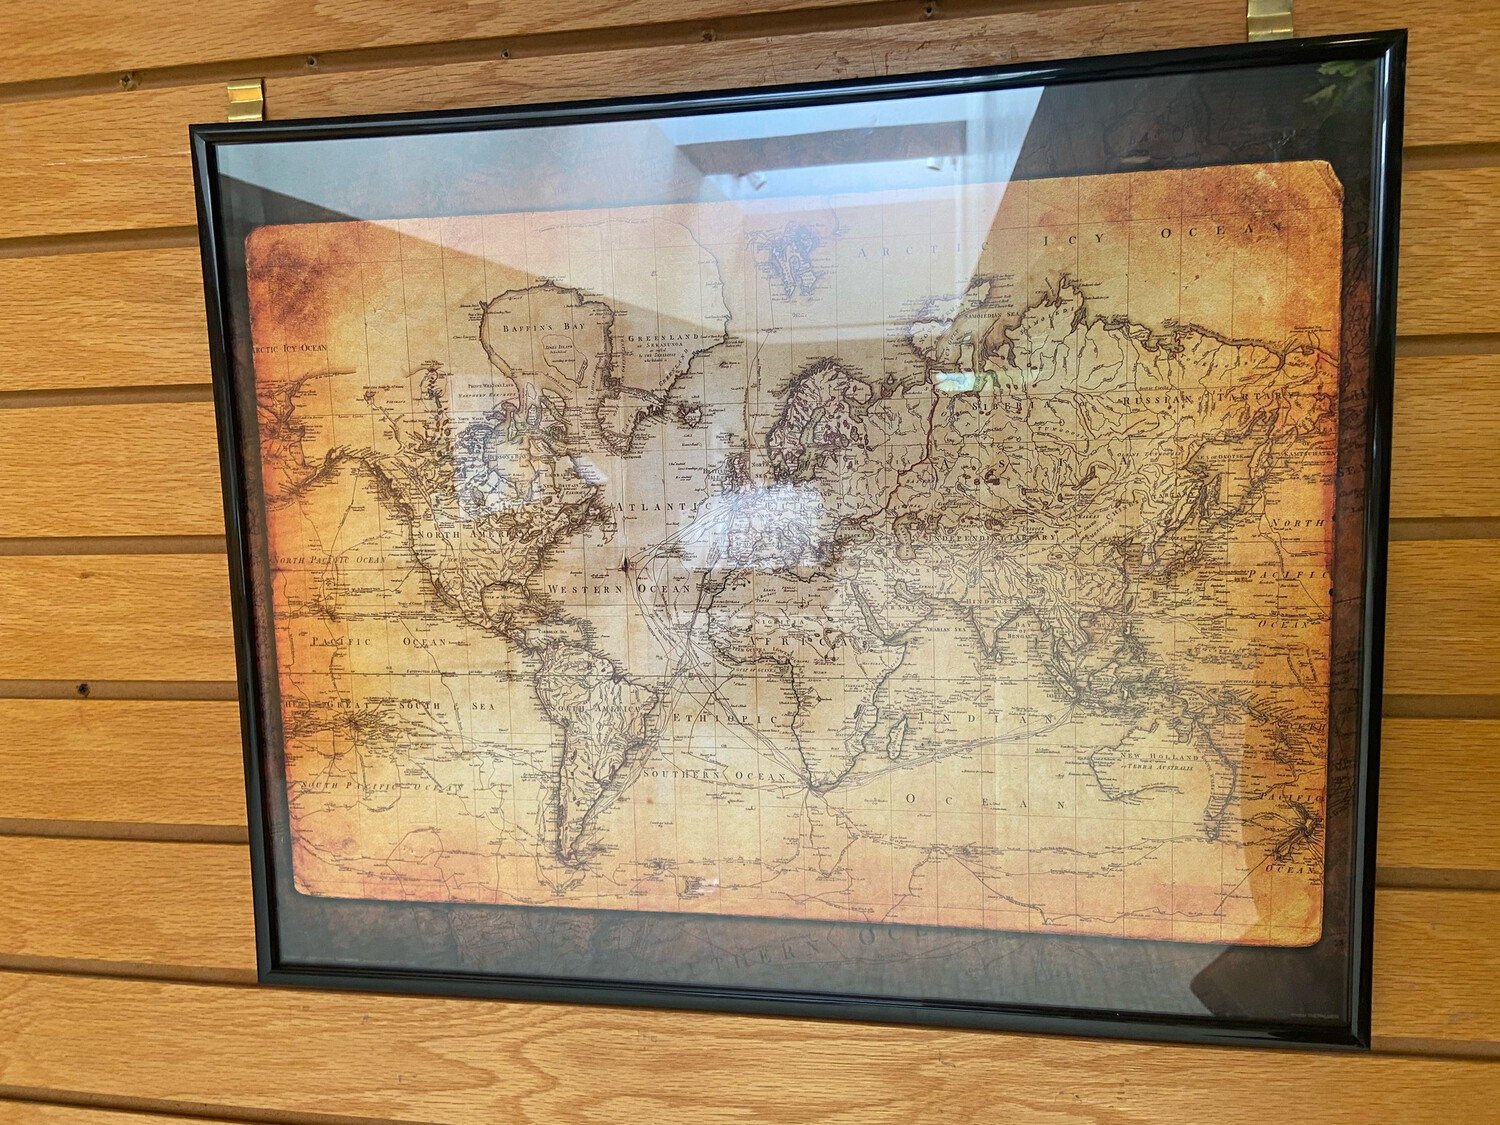 Framed reproduction map